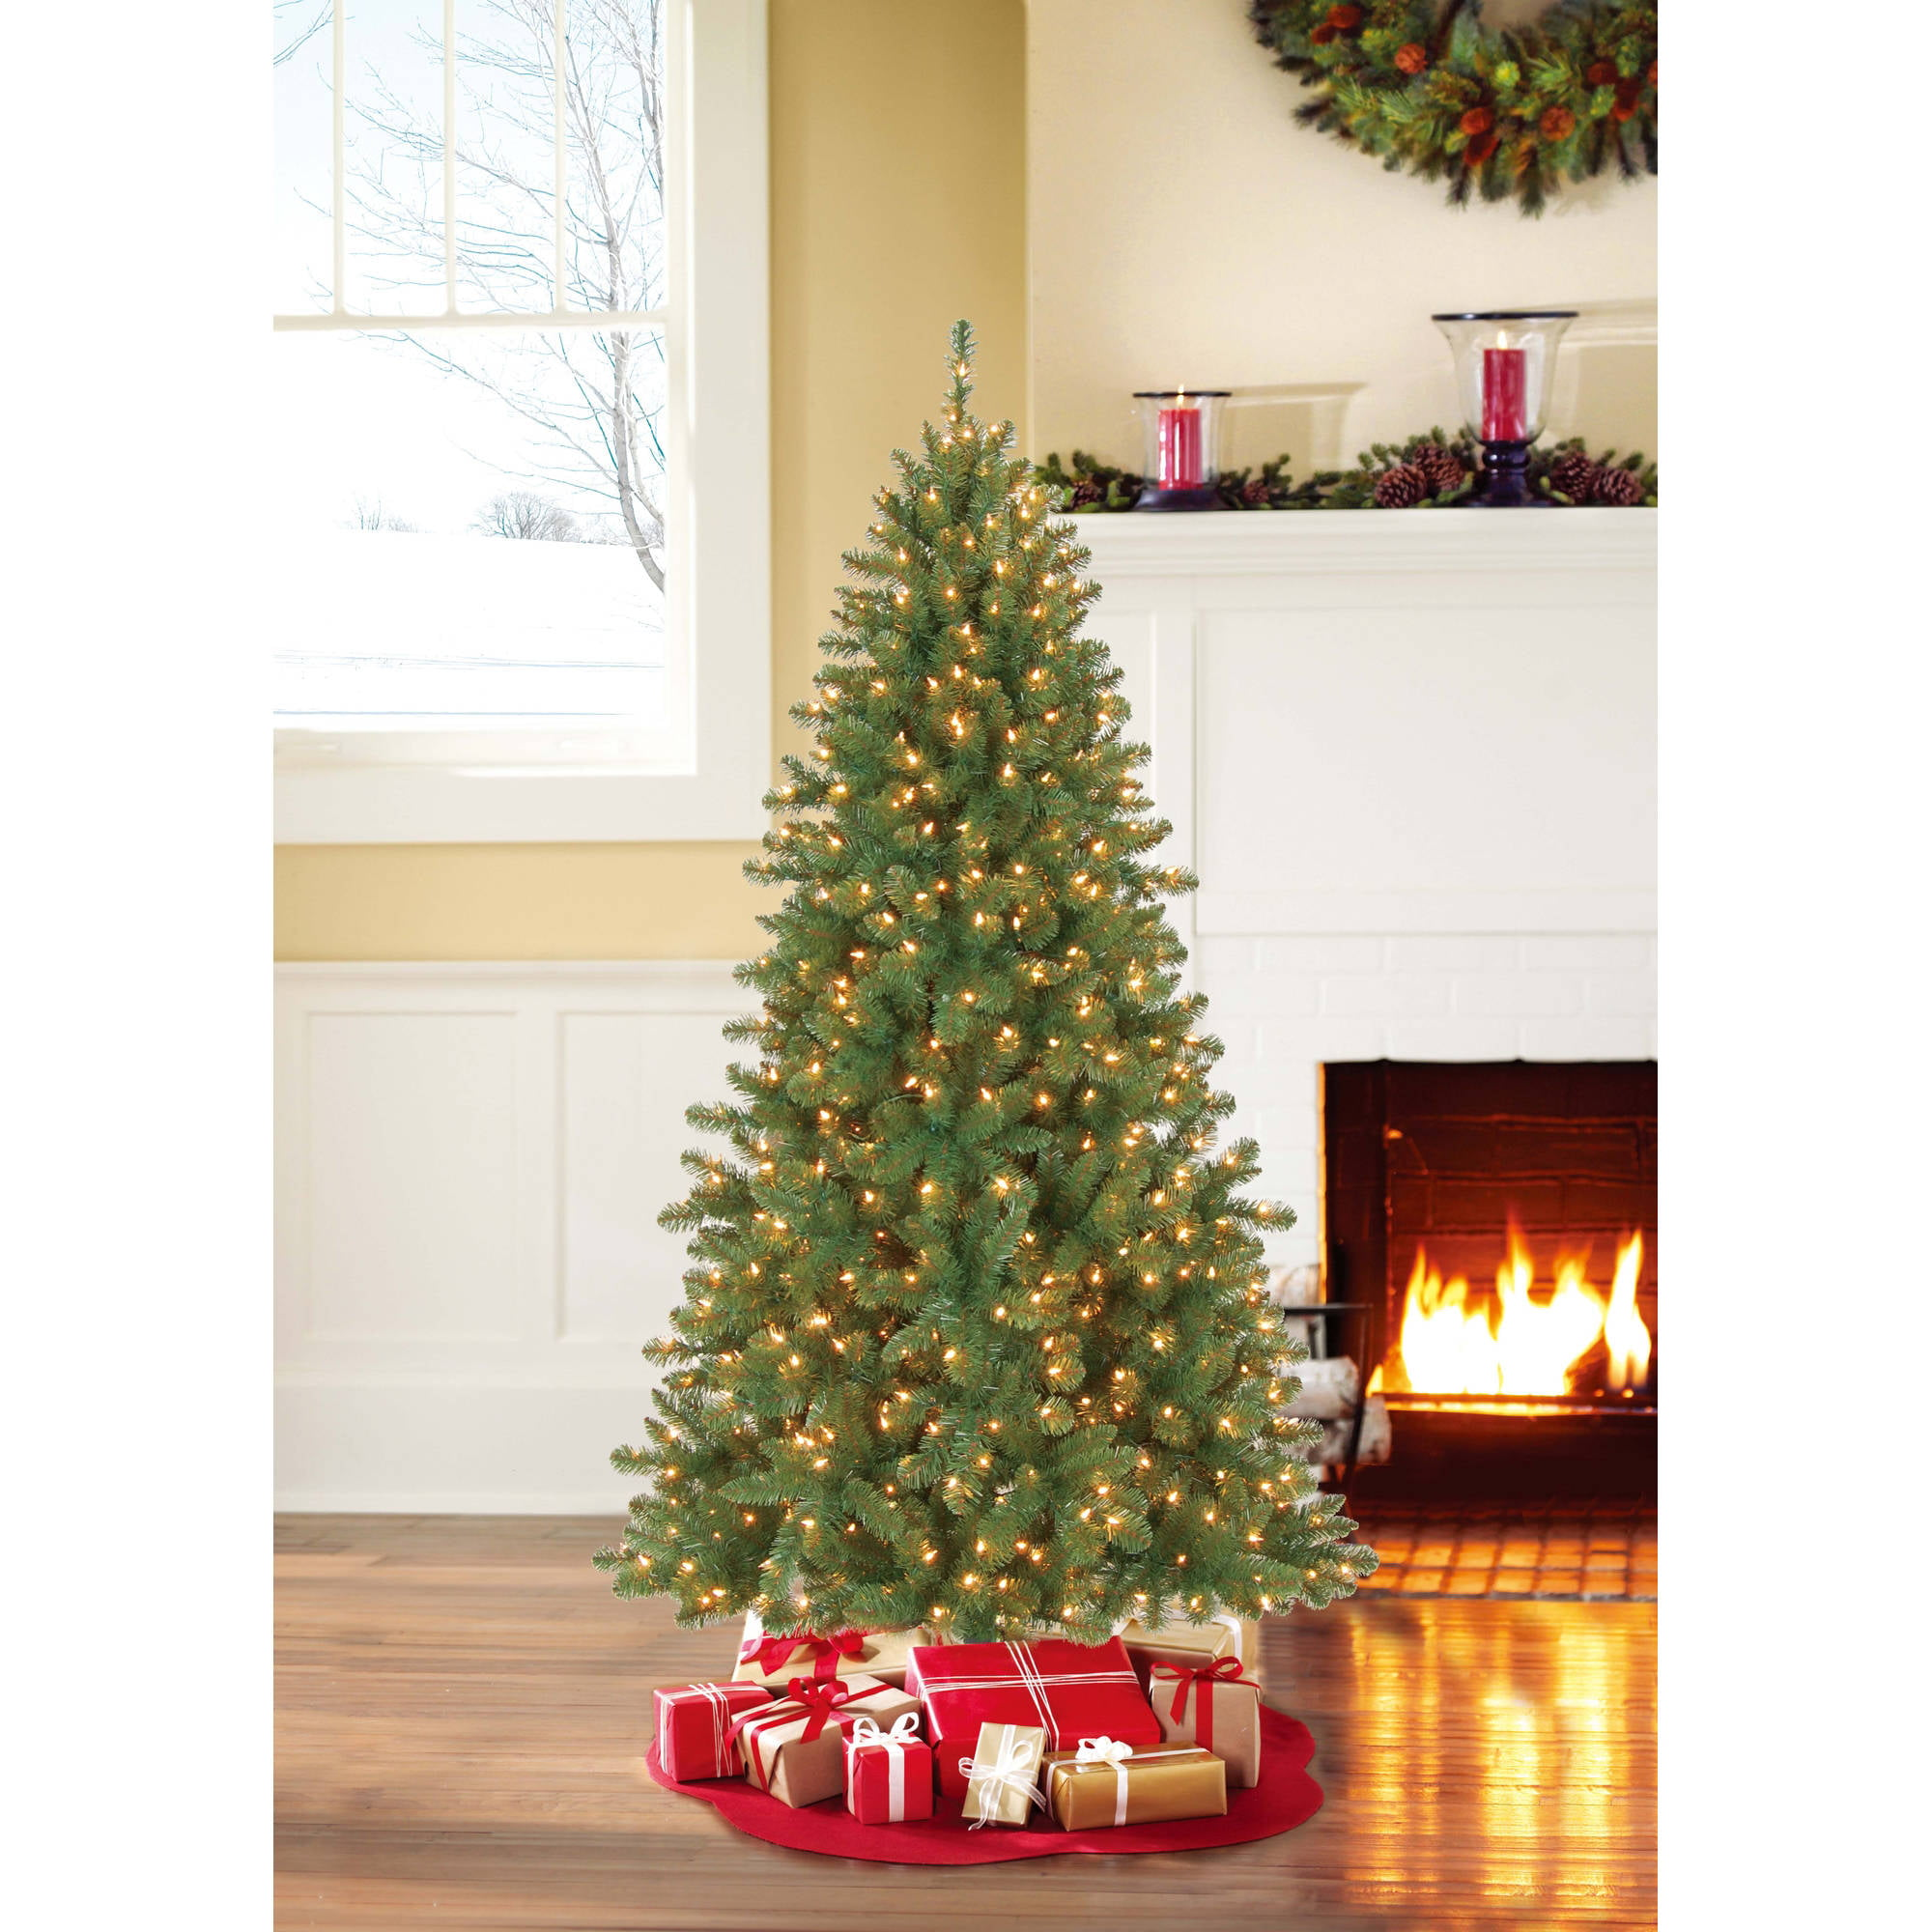 holiday time 32 inch white fiber optic tree 83 tips with continuously changing color walmartcom